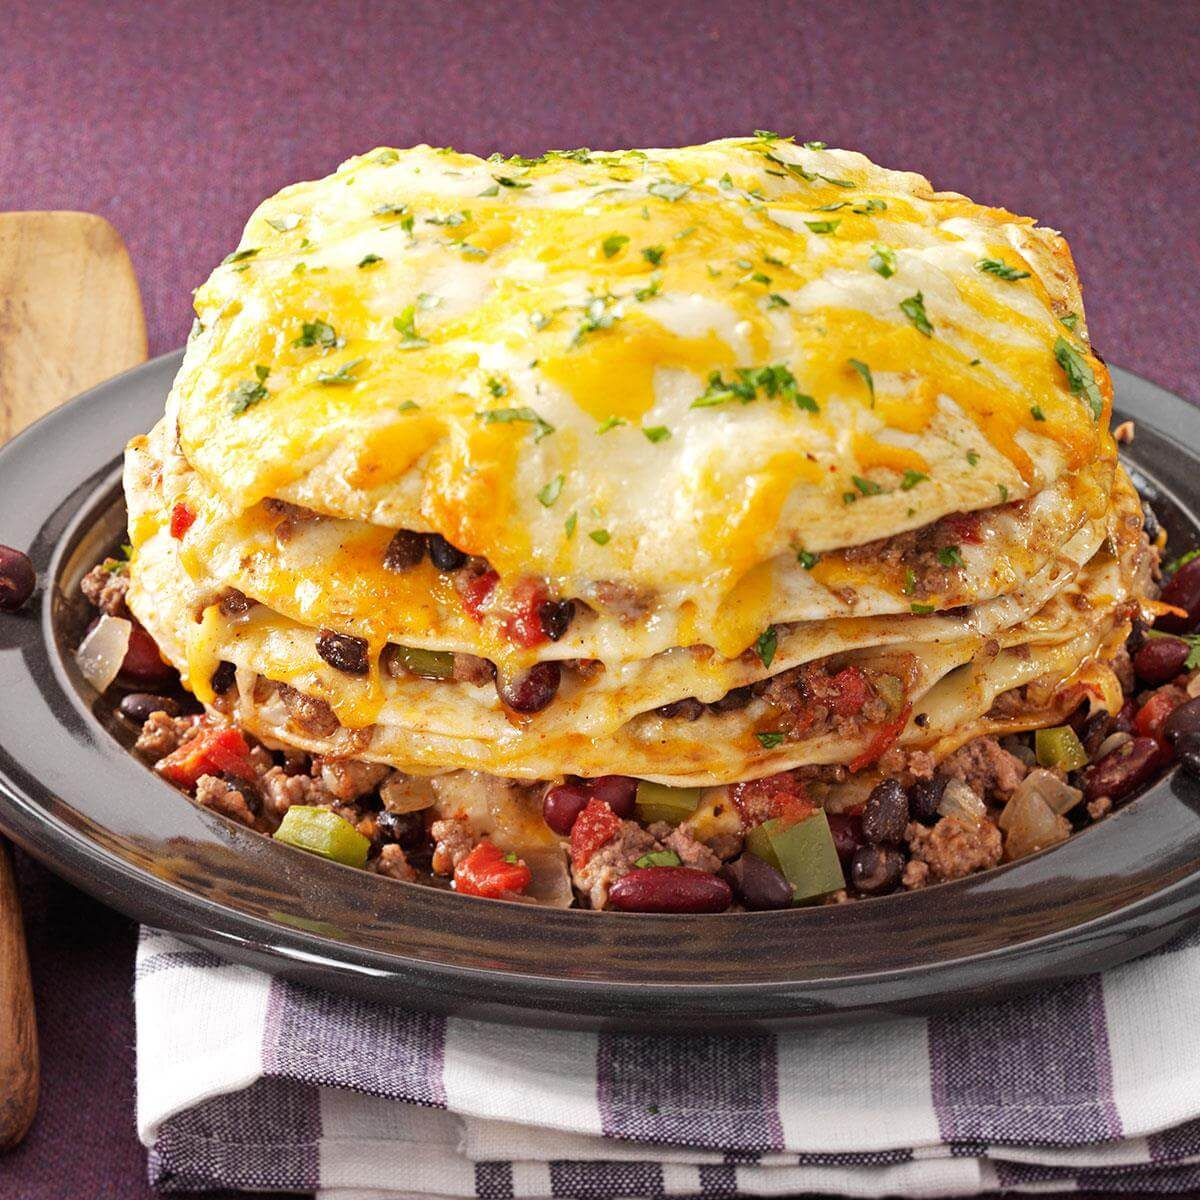 Slow Cooker Dinners: Slow Cooker Enchiladas Recipe